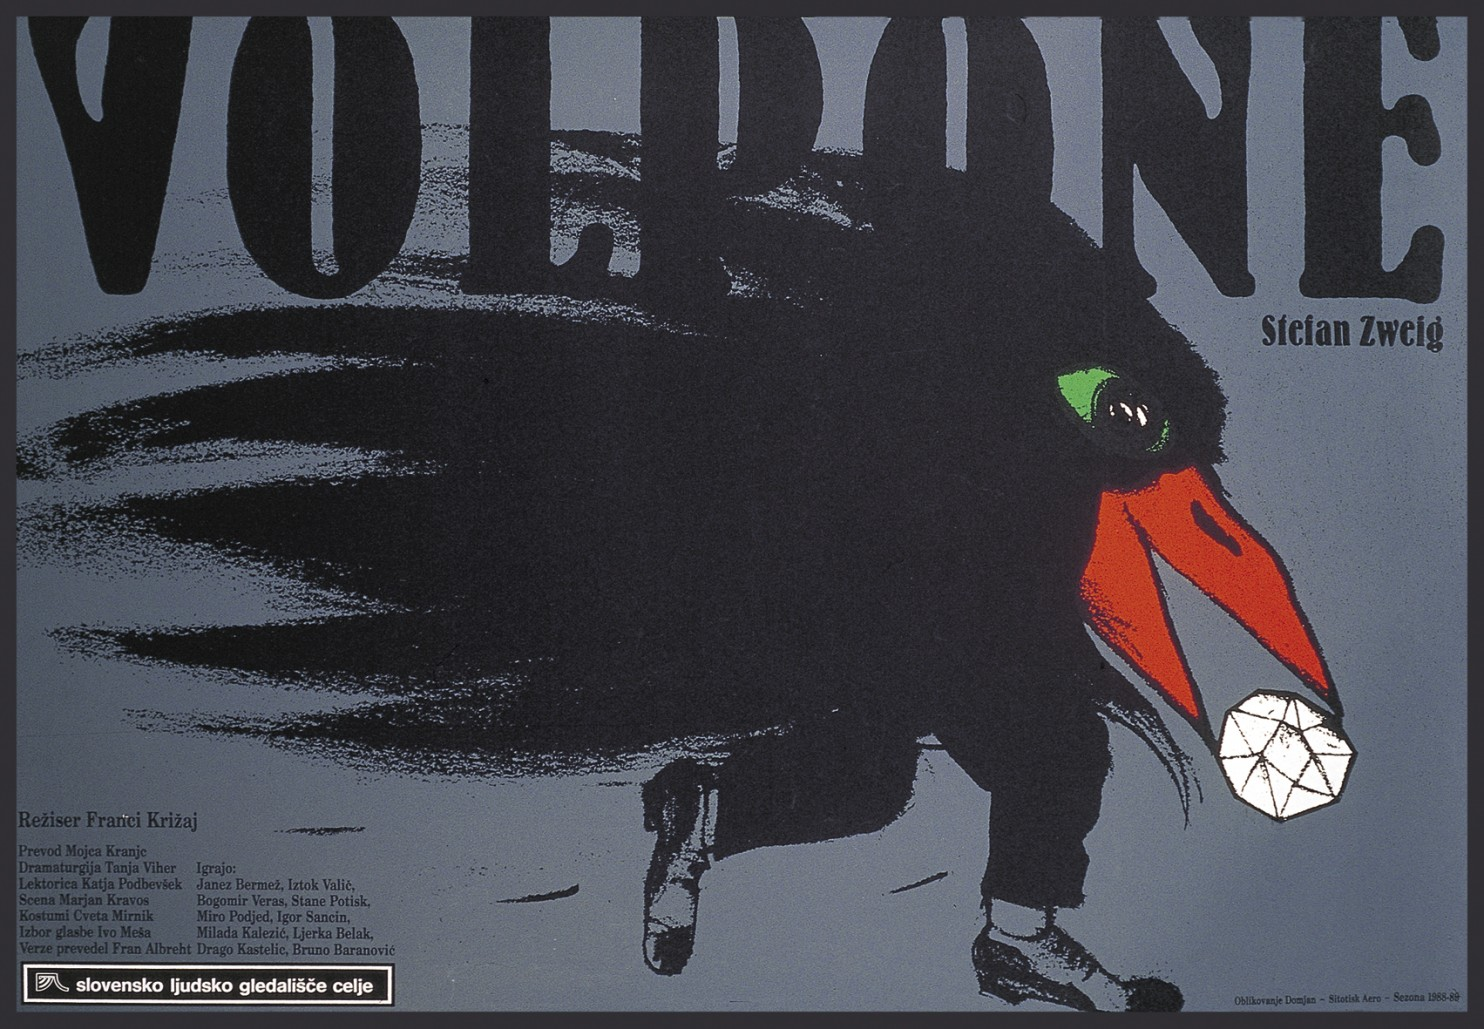 At the embassy of the Republic of Slovenia, an exhibit of theater posters as high art